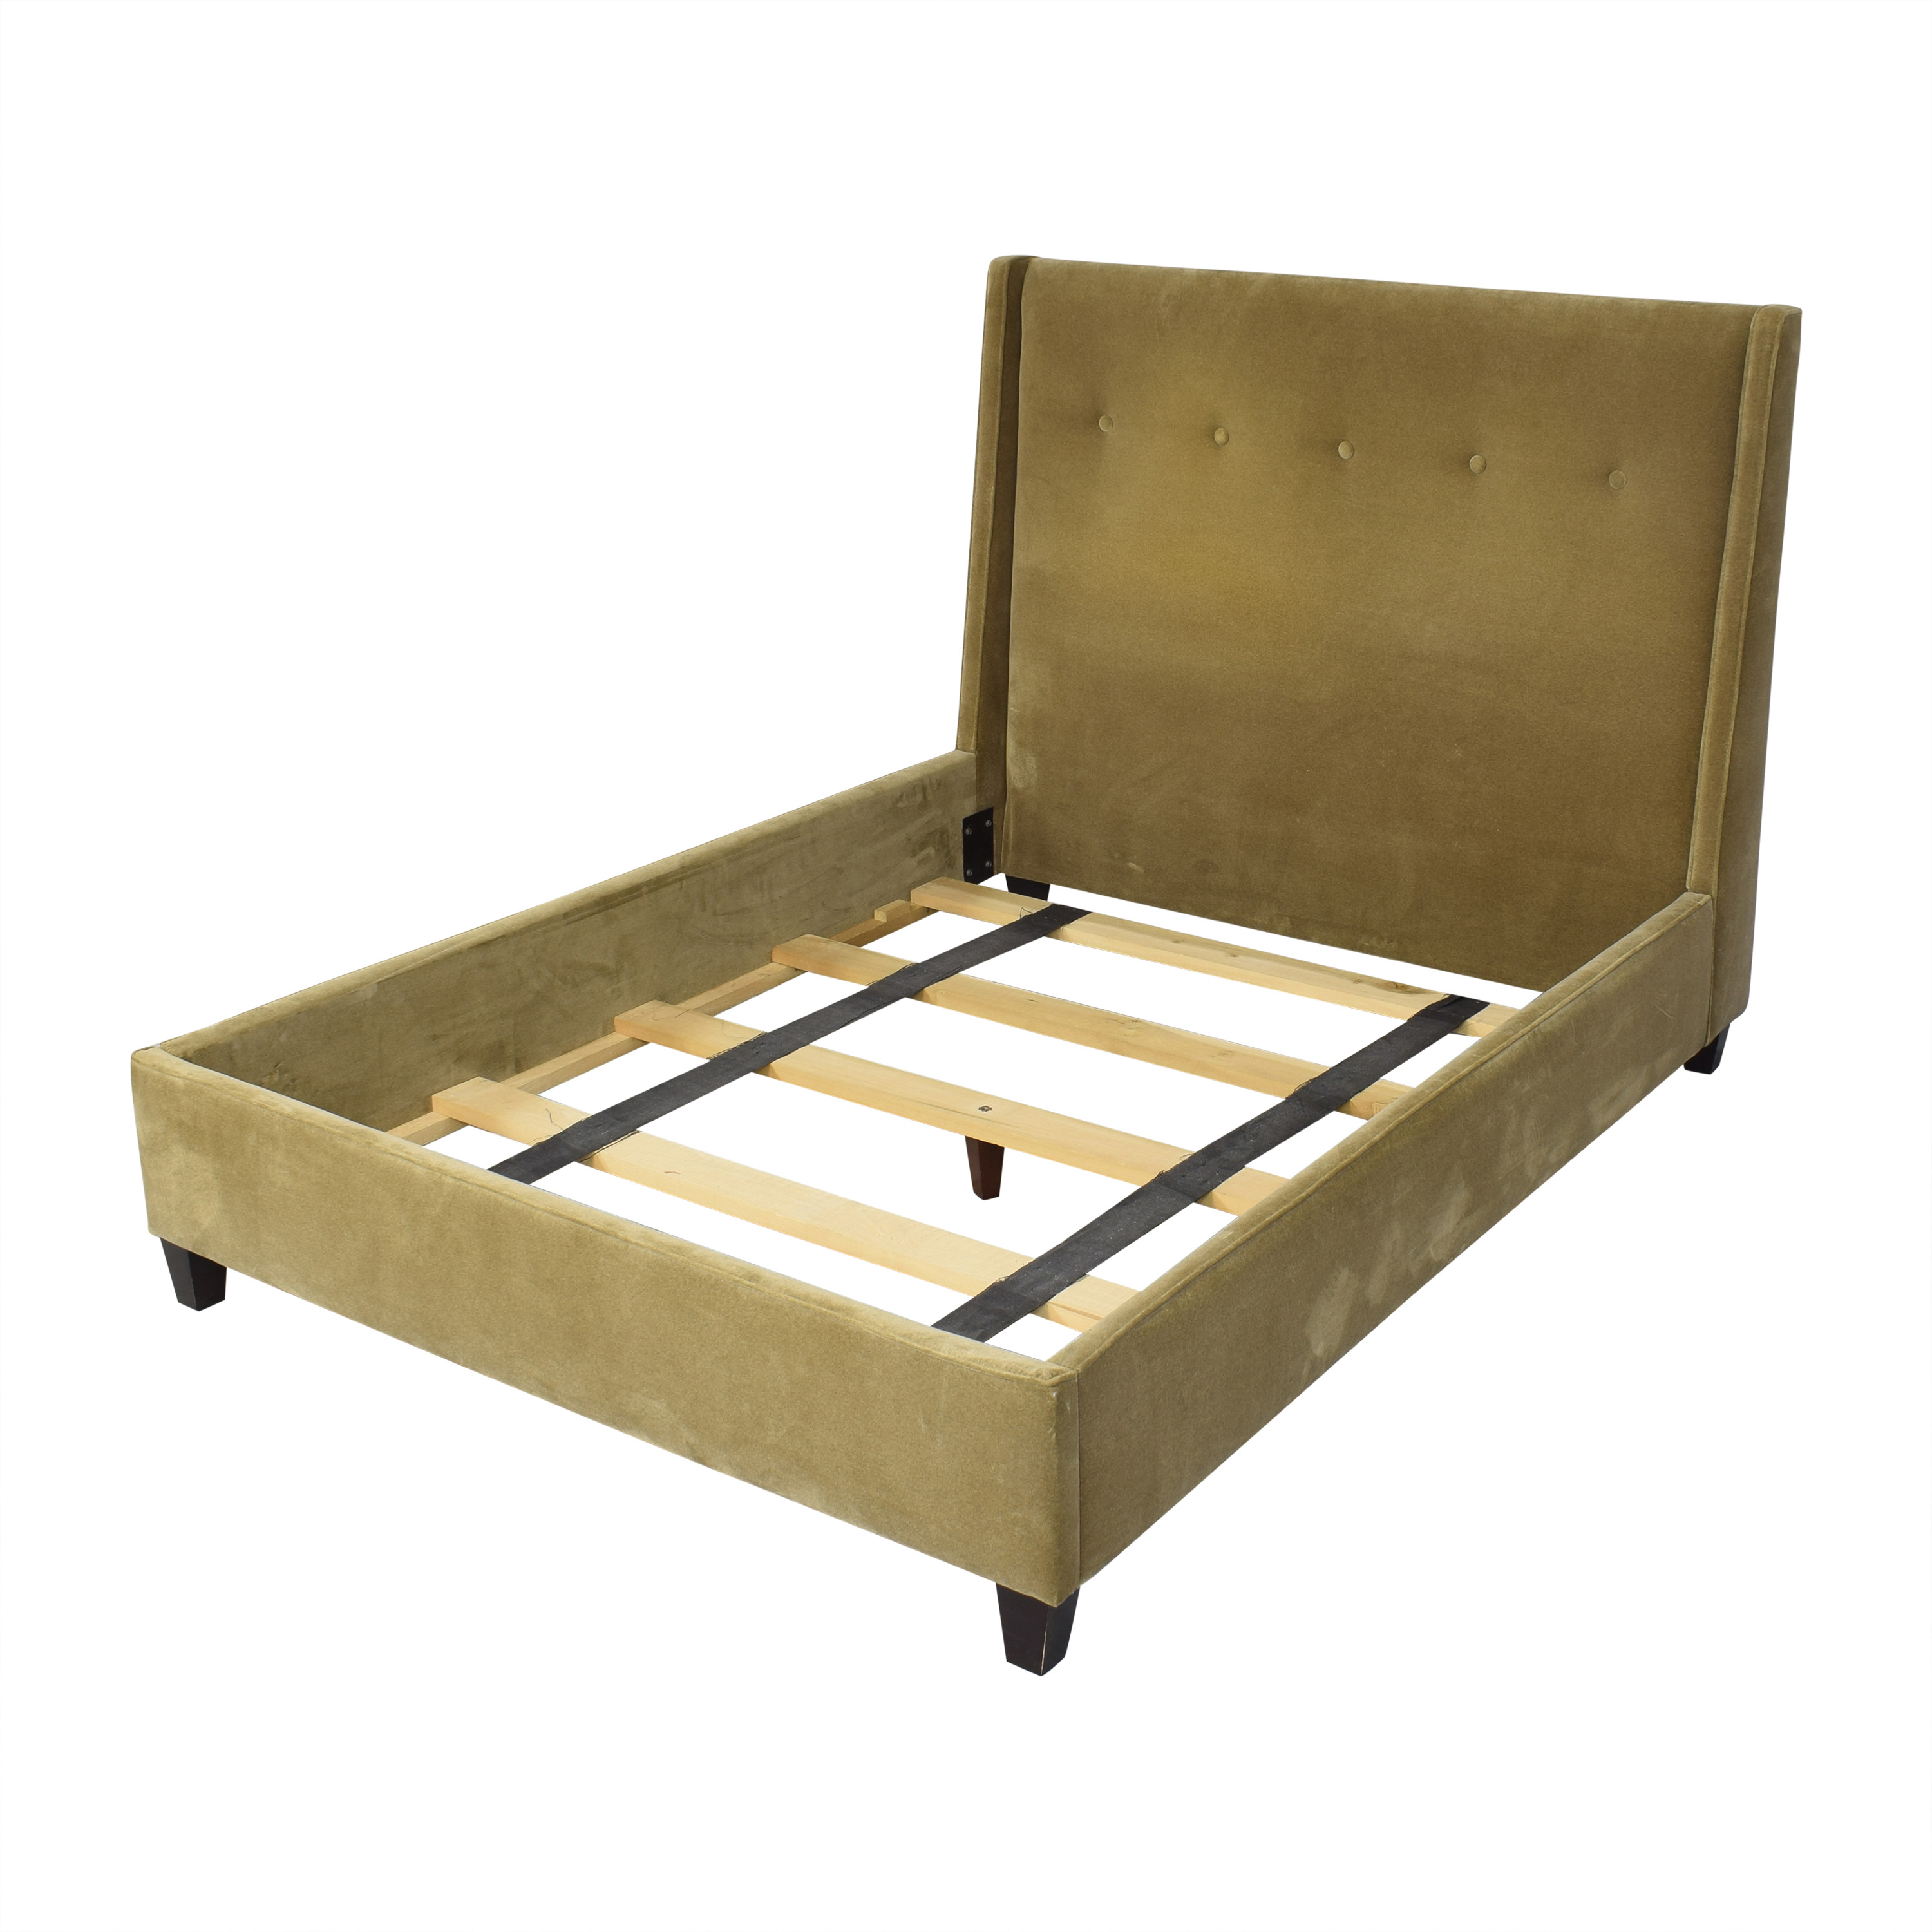 buy Crate & Barrel Archer Queen Bed Crate & Barrel Bed Frames